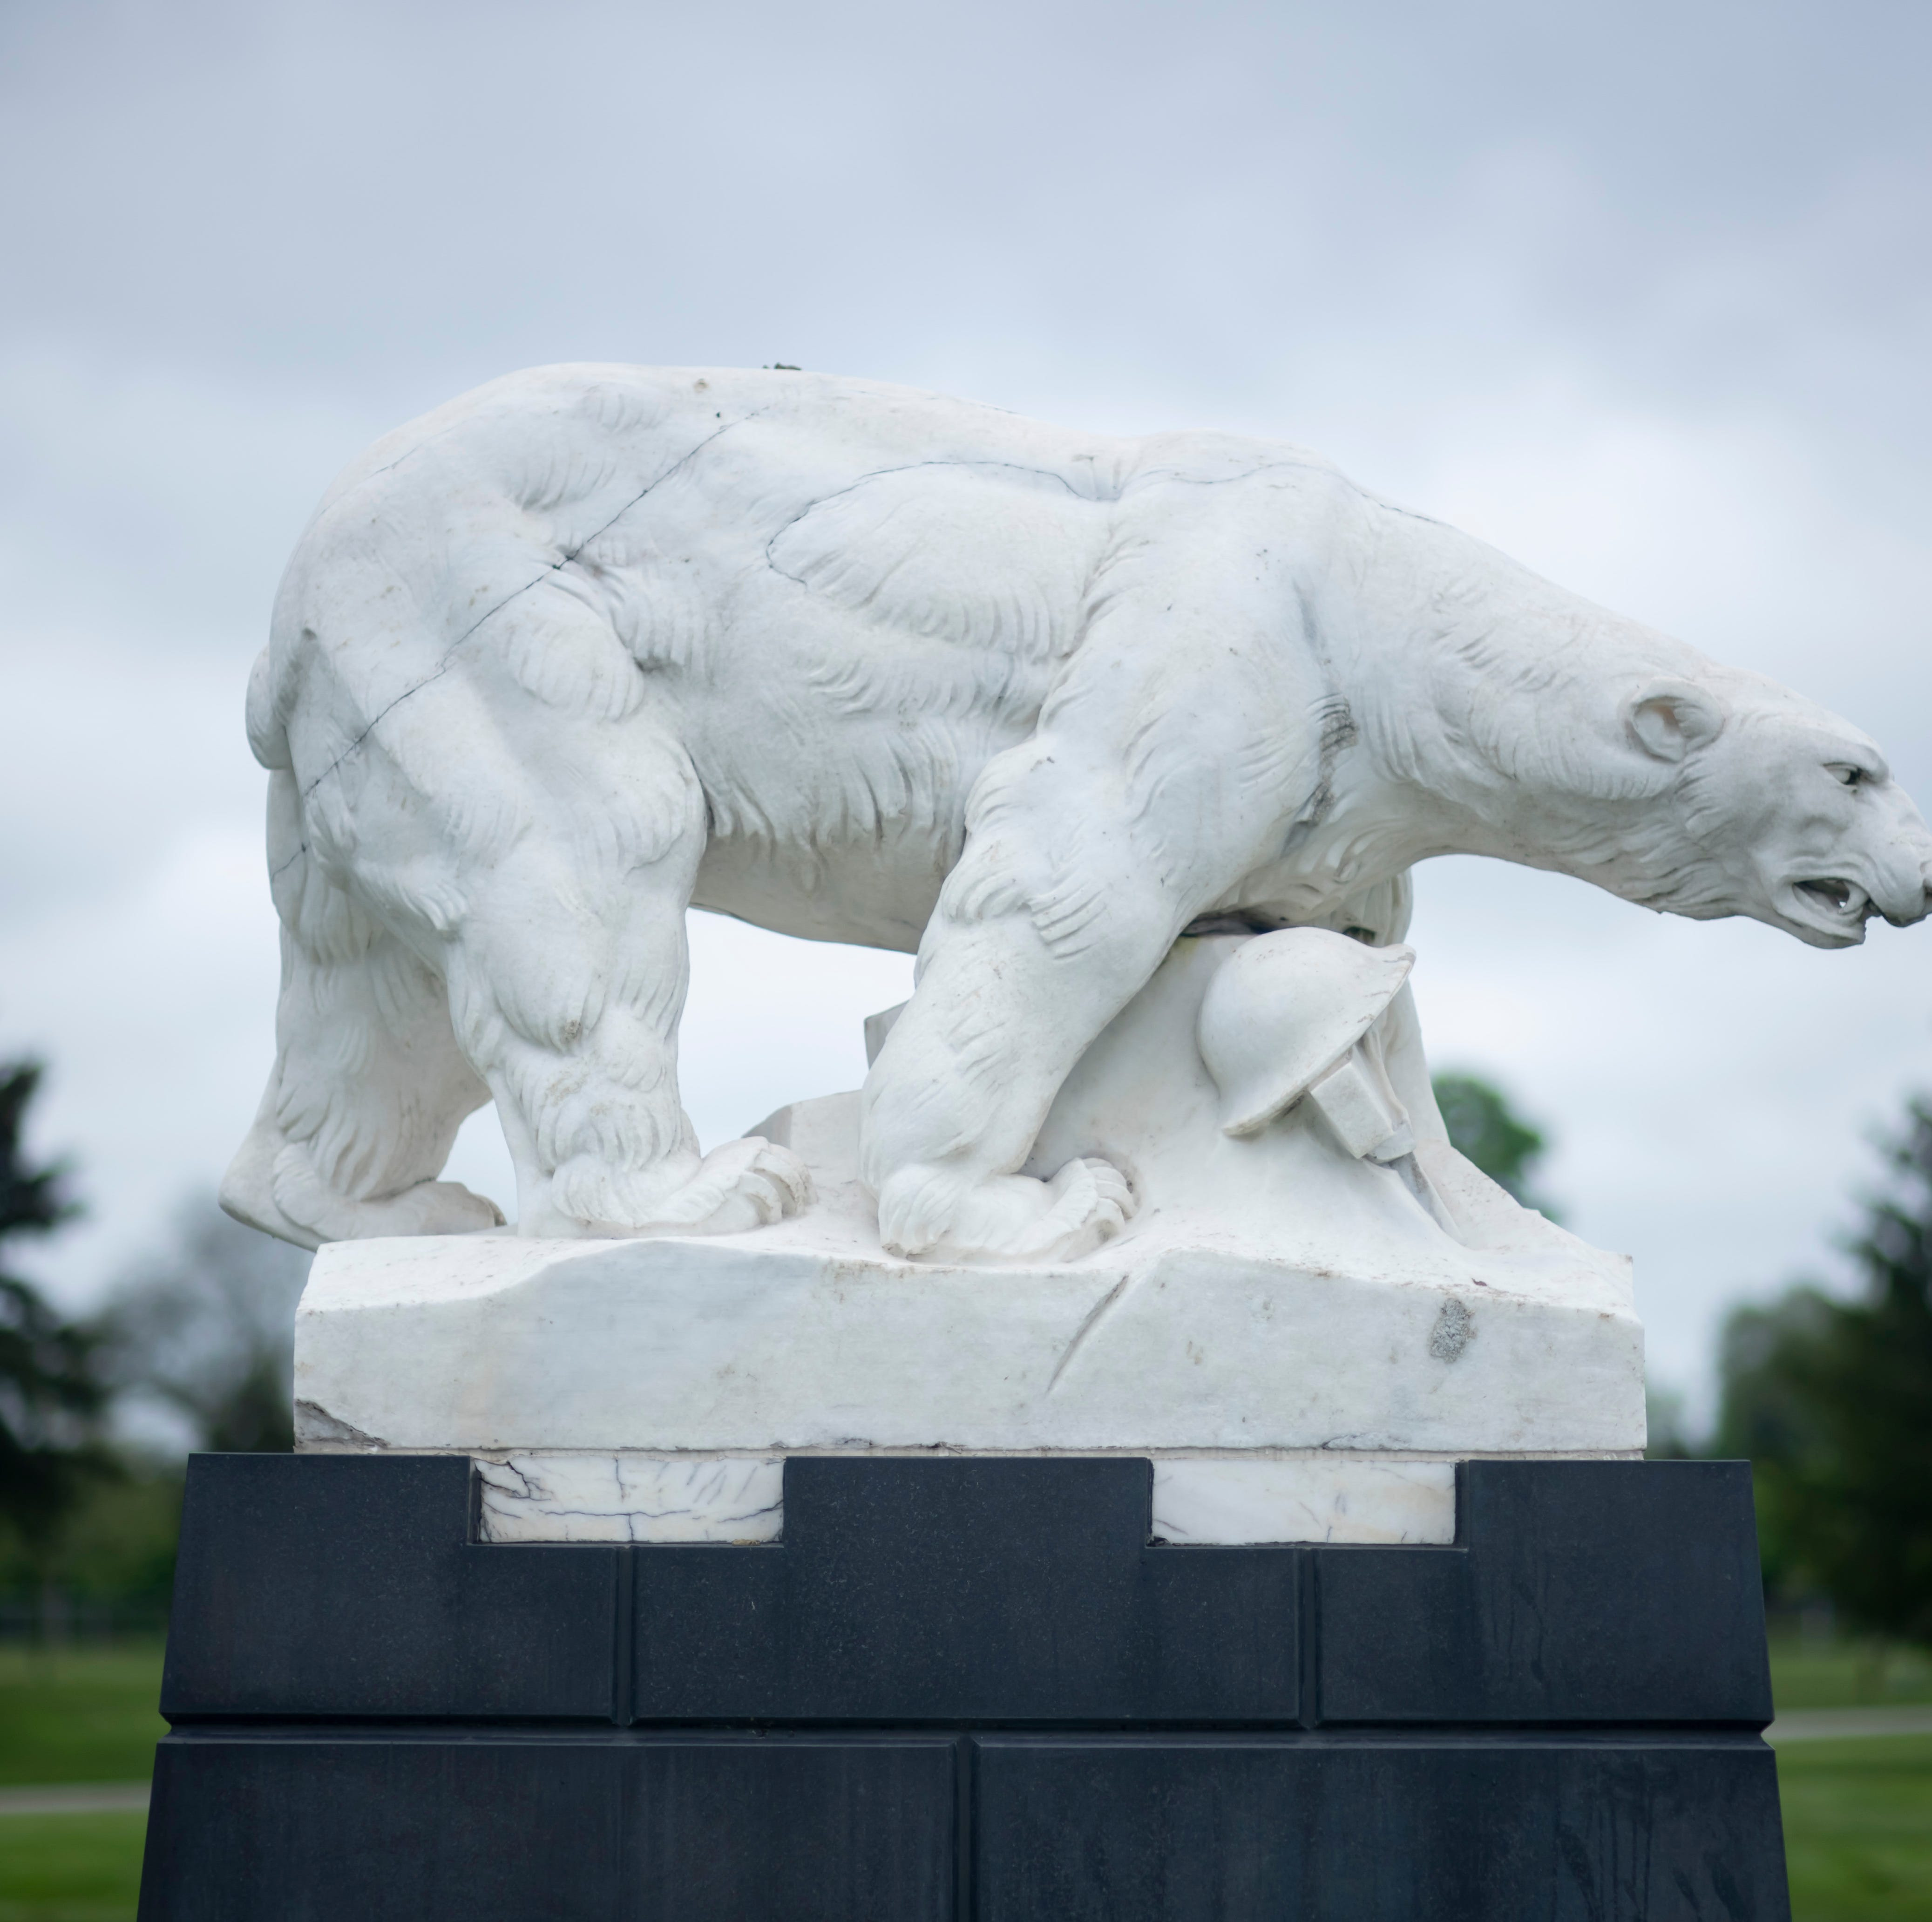 'Polar Bear' memorial in Troy marks a largely forgotten GI mission in WWI Russia